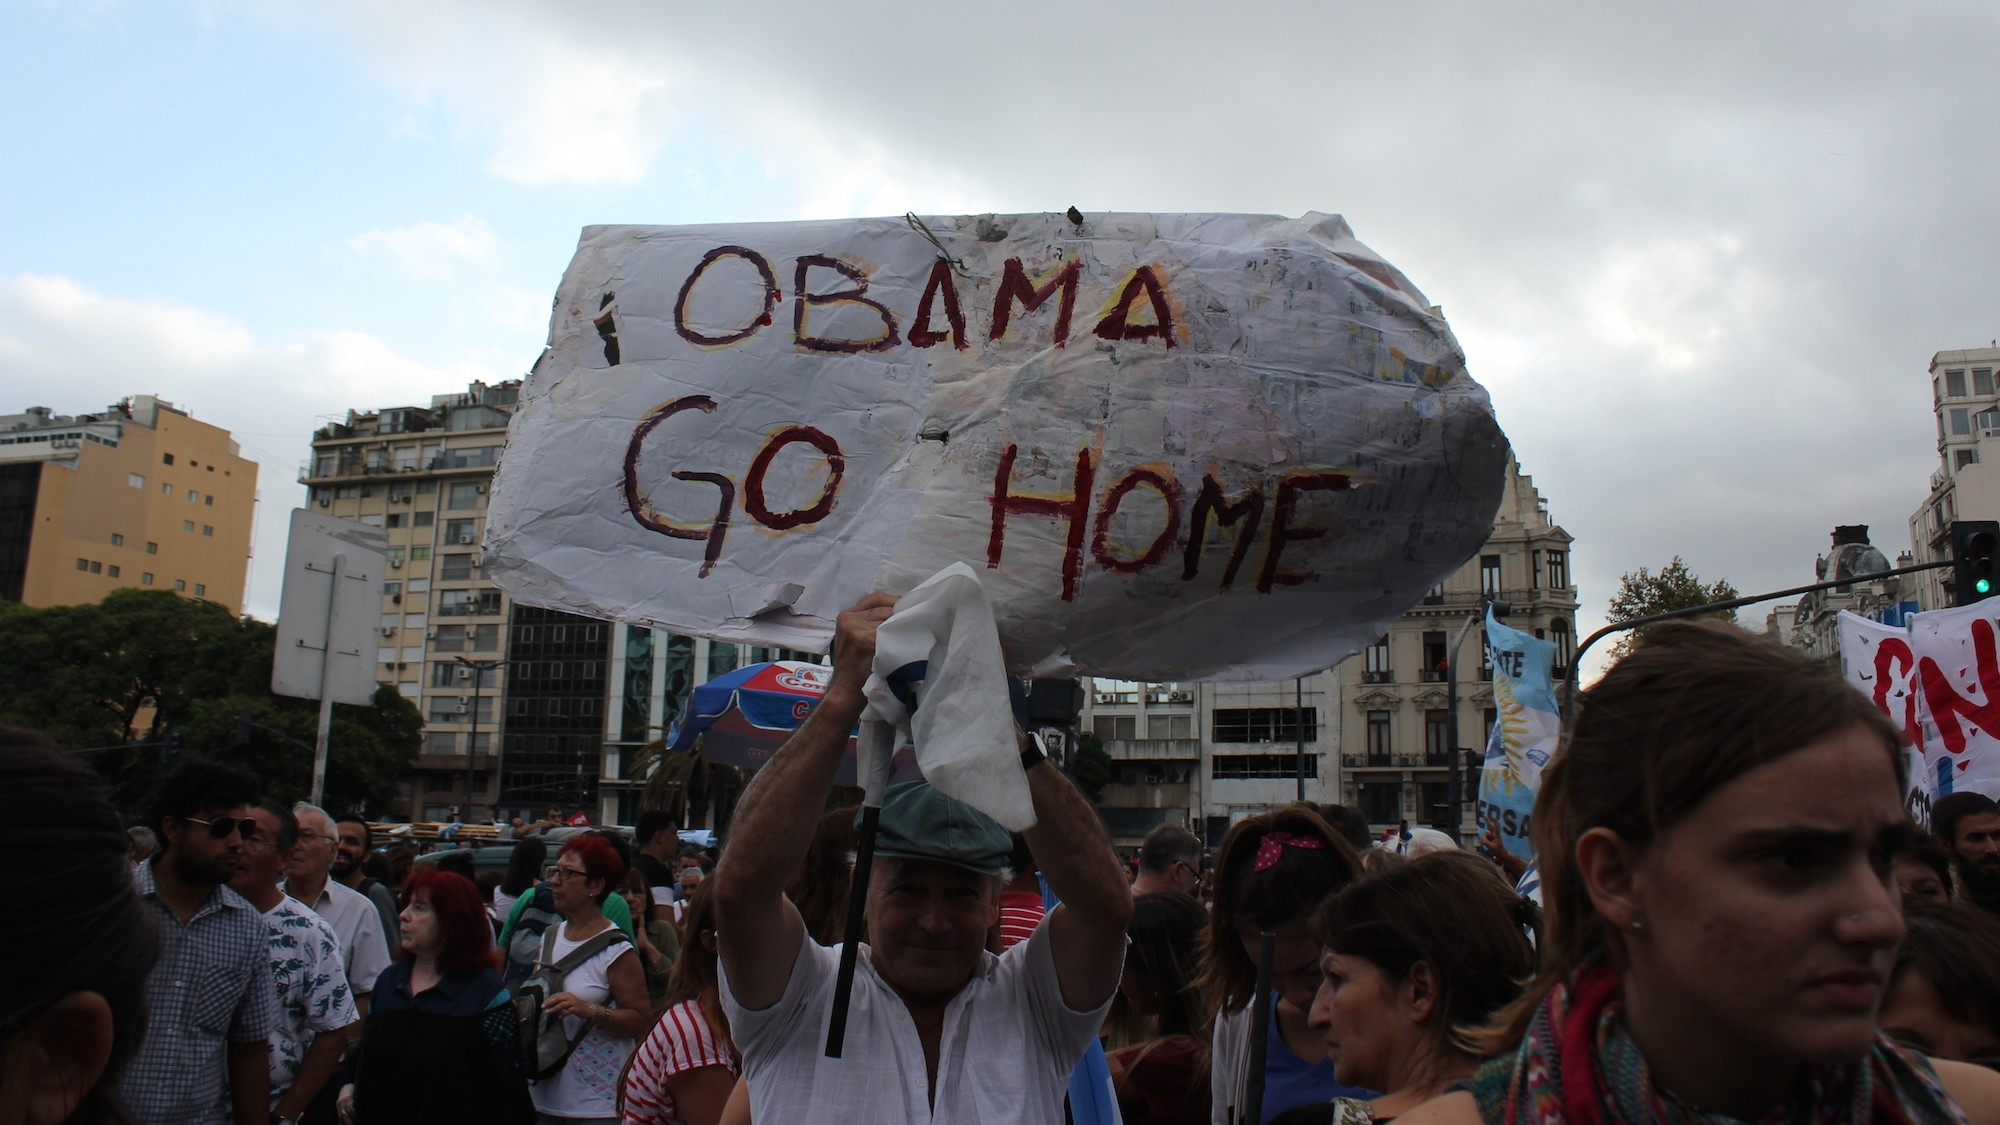 Marchers Condemn Obama's Visit on the 40th Anniversary of Argentina's Dictatorship